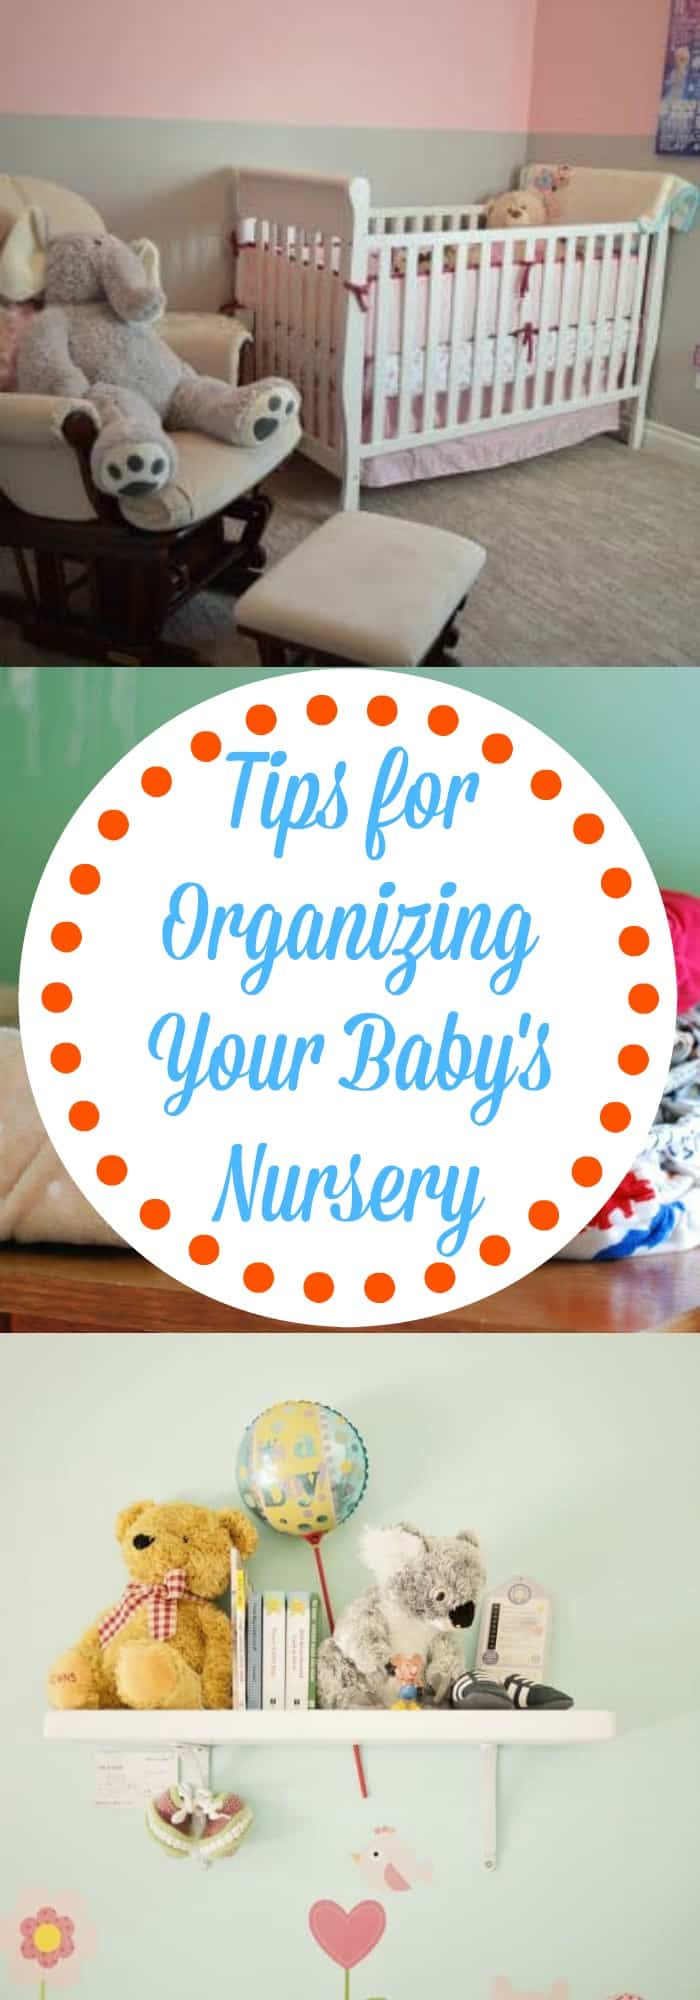 Tips for Organizing Your Baby's Nursery